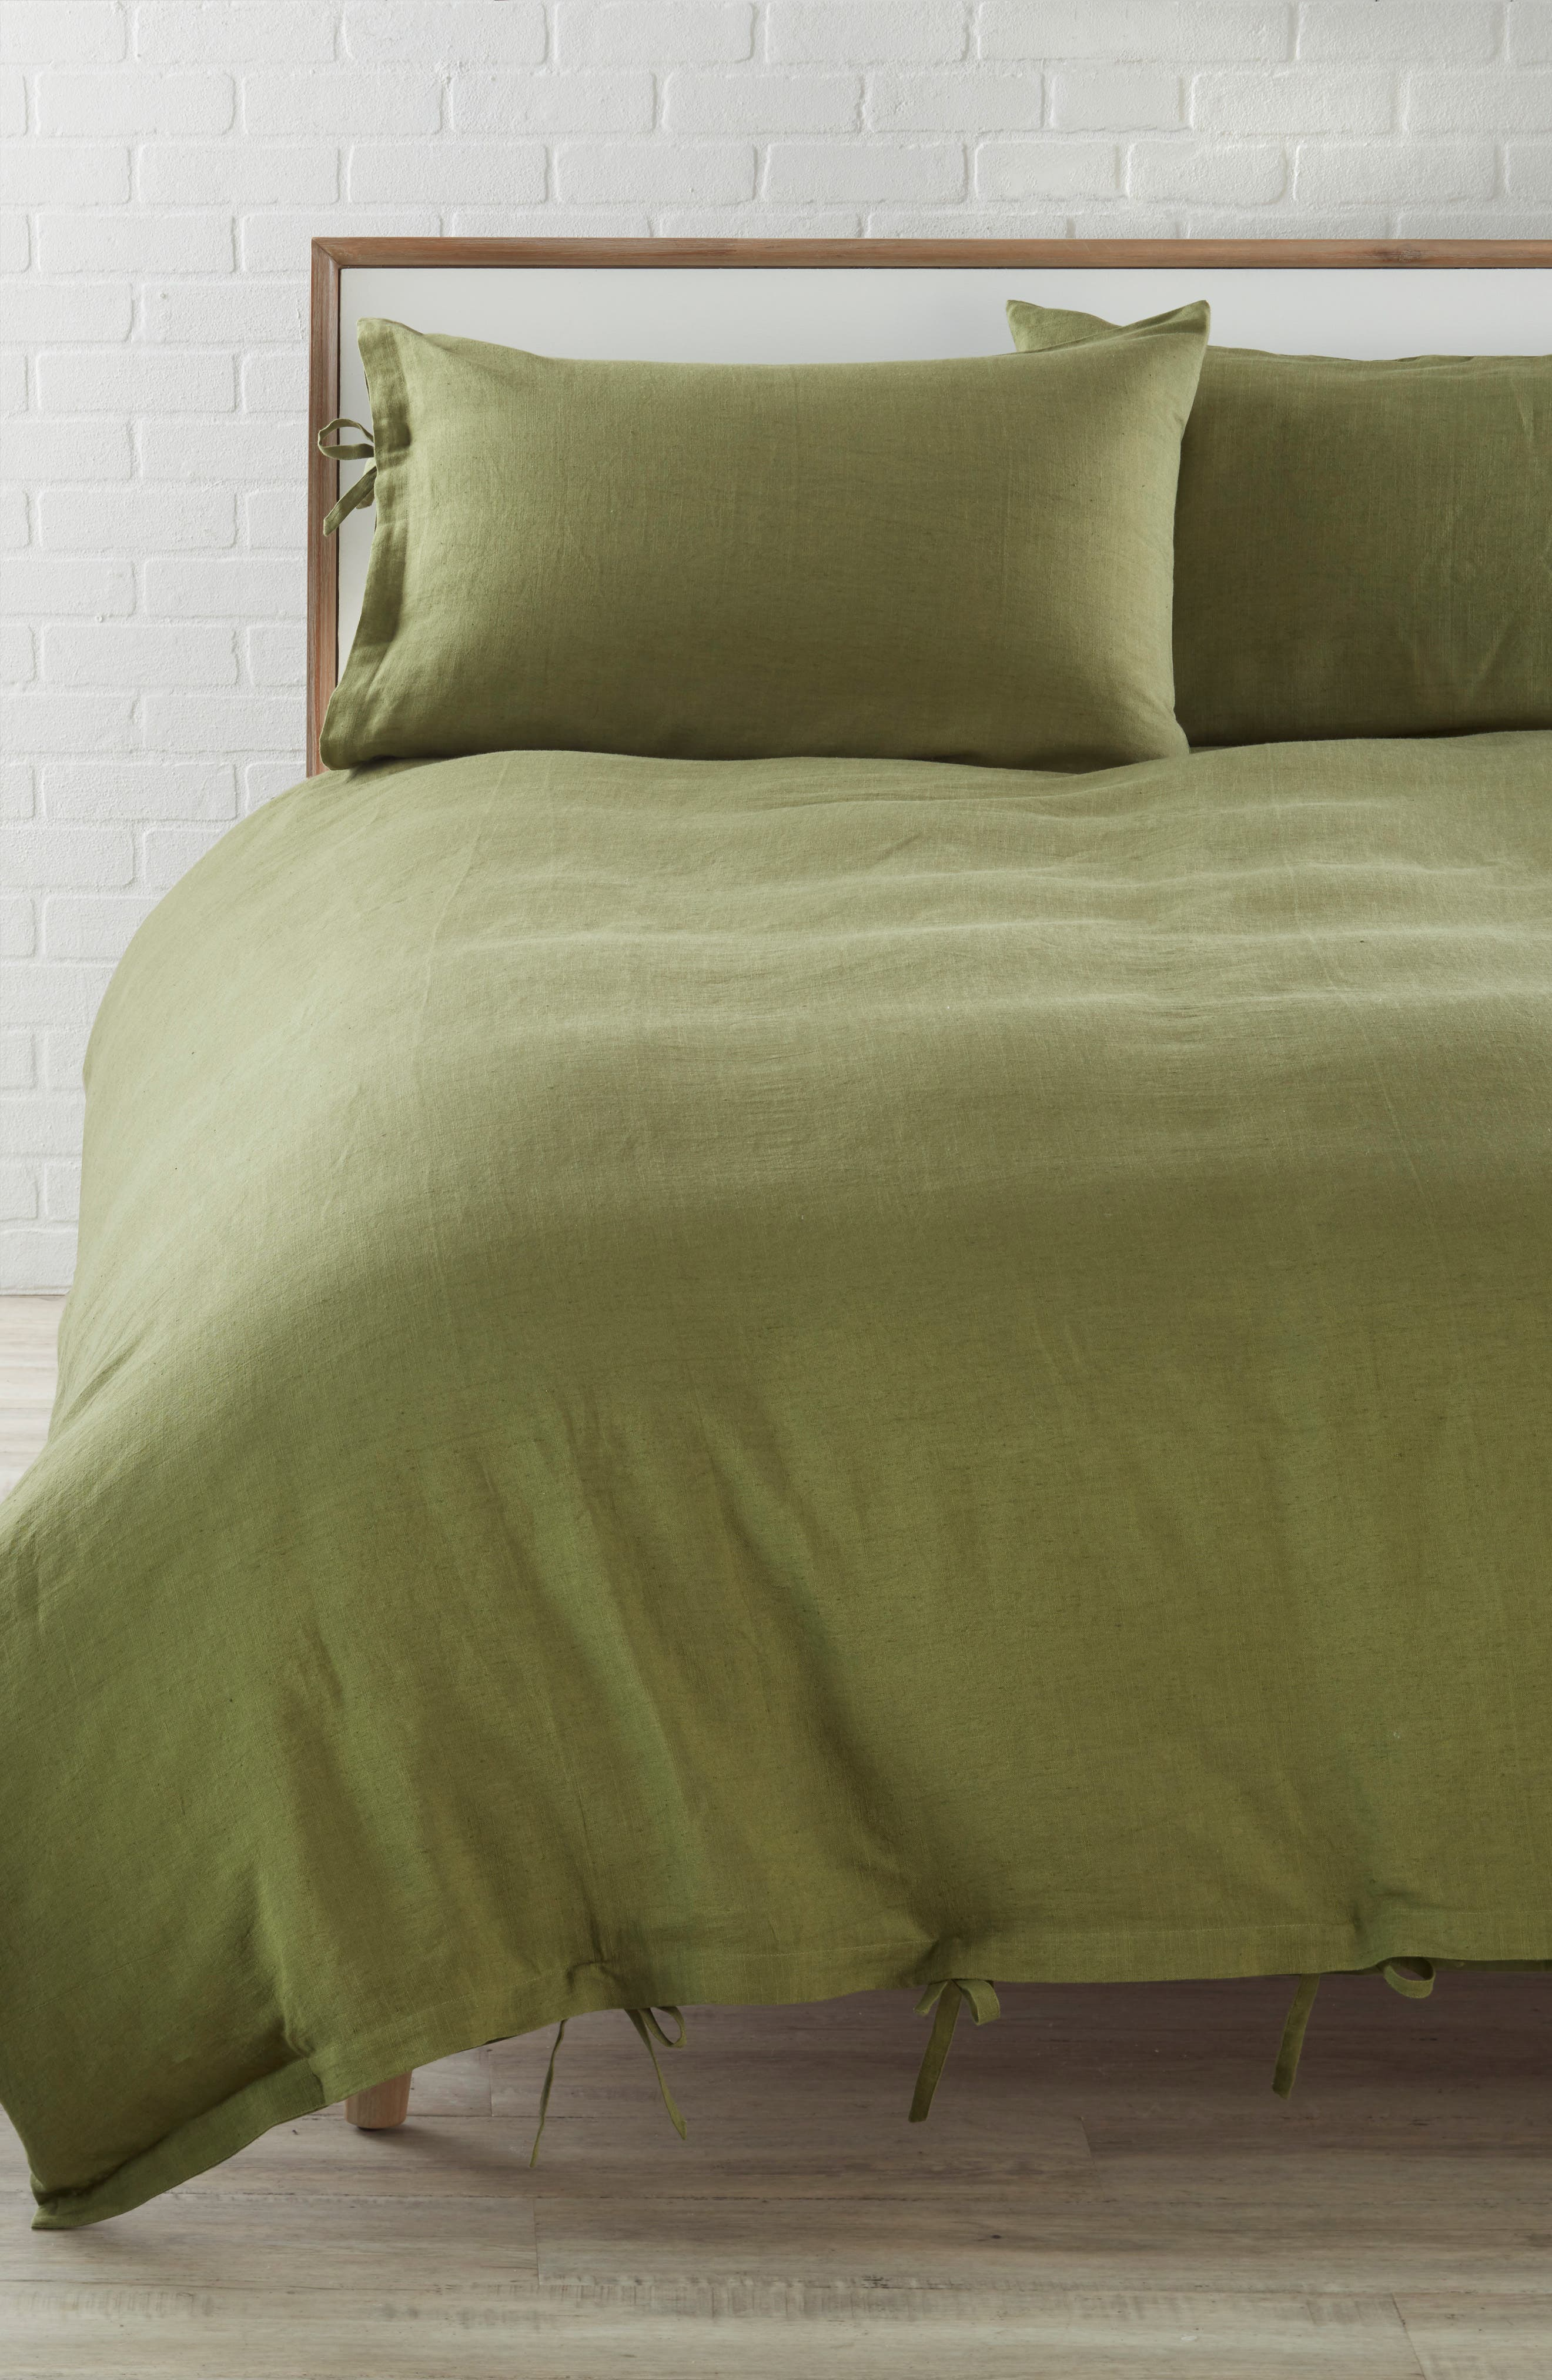 Relaxed Cotton & Linen Duvet Cover,                             Main thumbnail 1, color,                             OLIVE SPICE